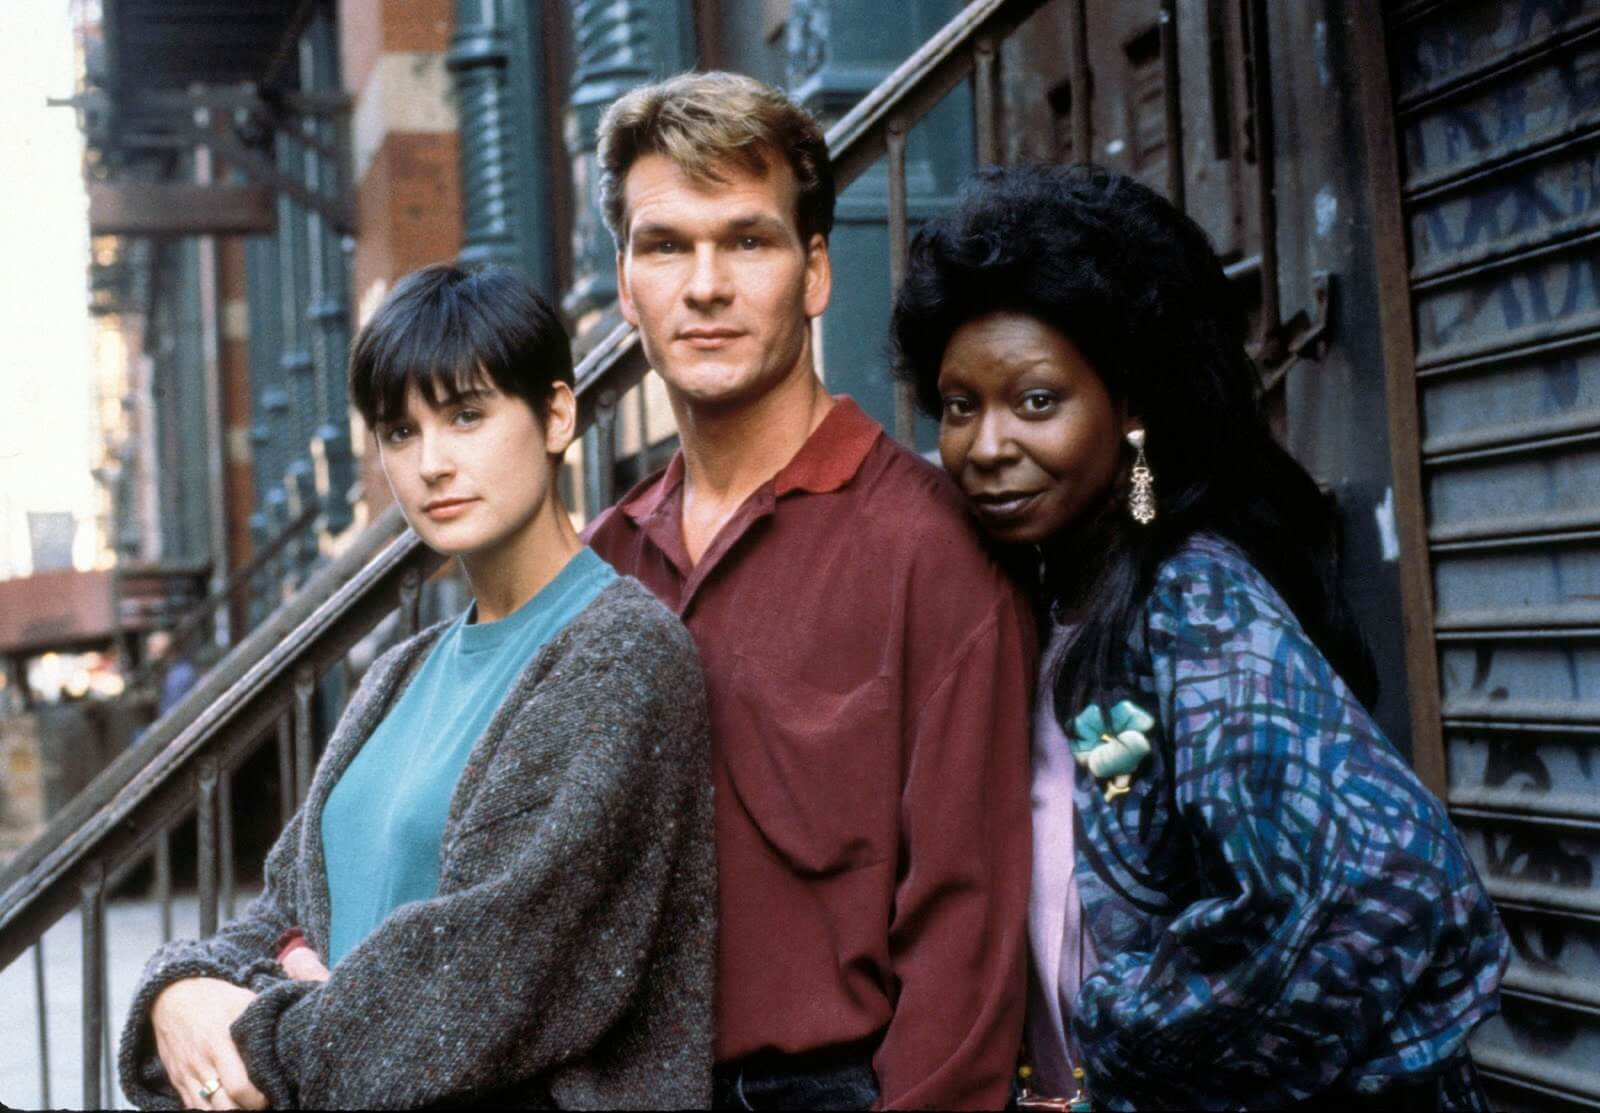 Demi Moore, Patrick Swayze, Whoopi Goldberg as the cast of Ghost